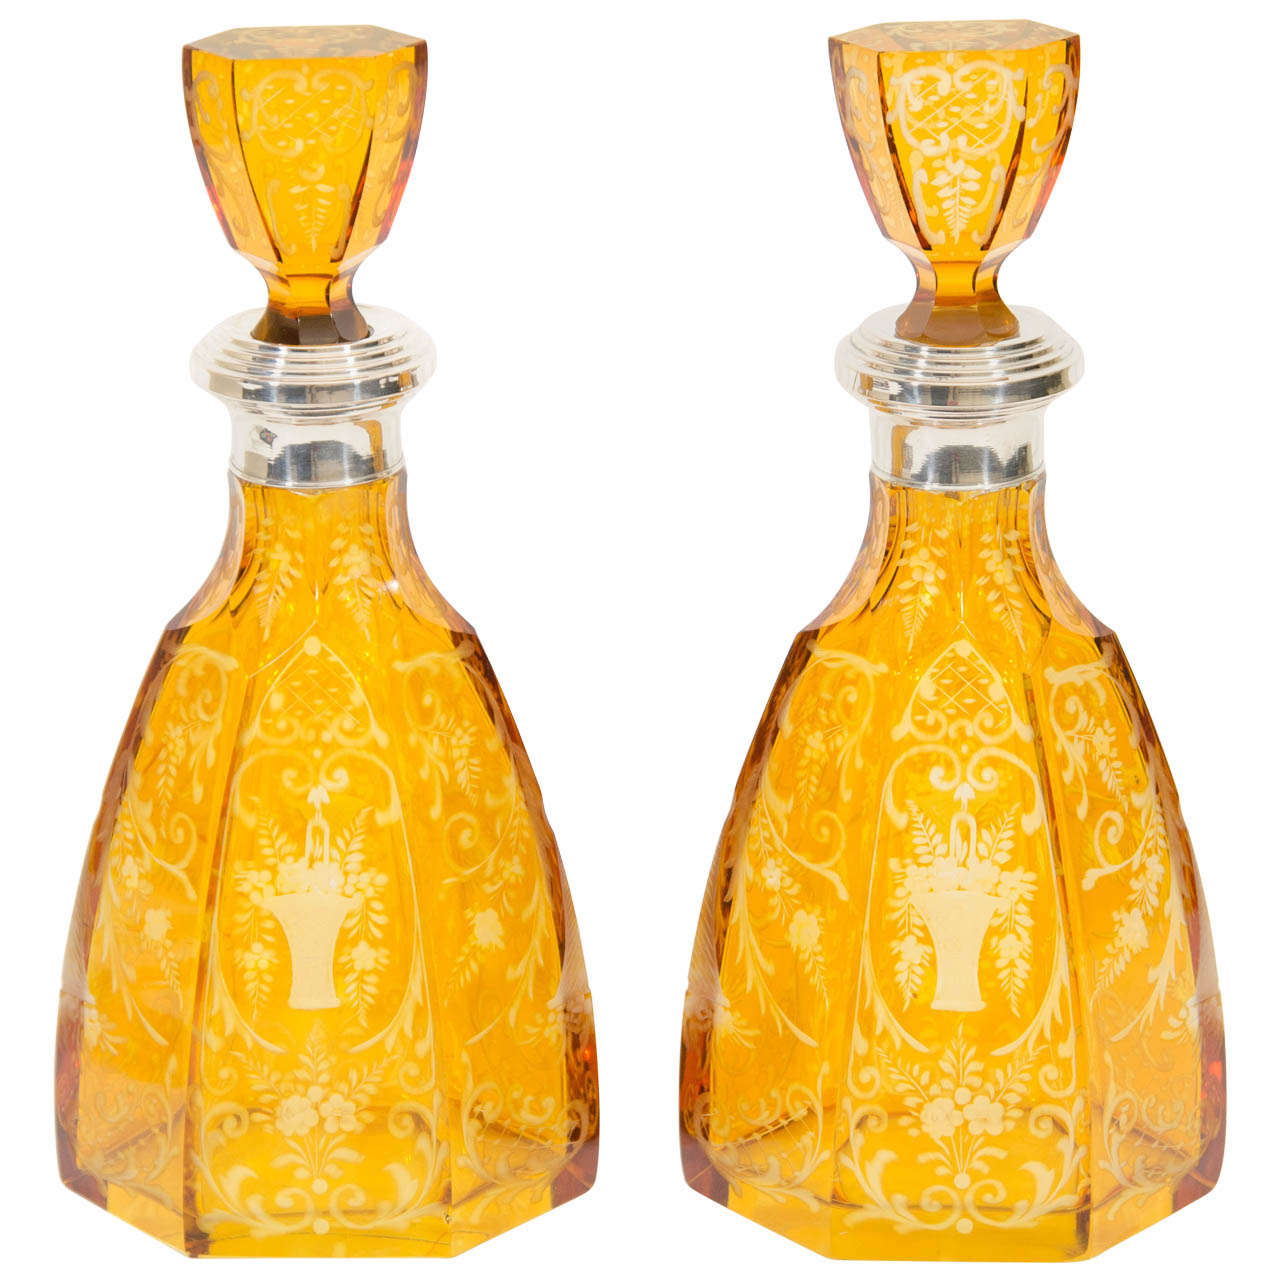 Etched amber crystal bohemian decanters at 1stdibs